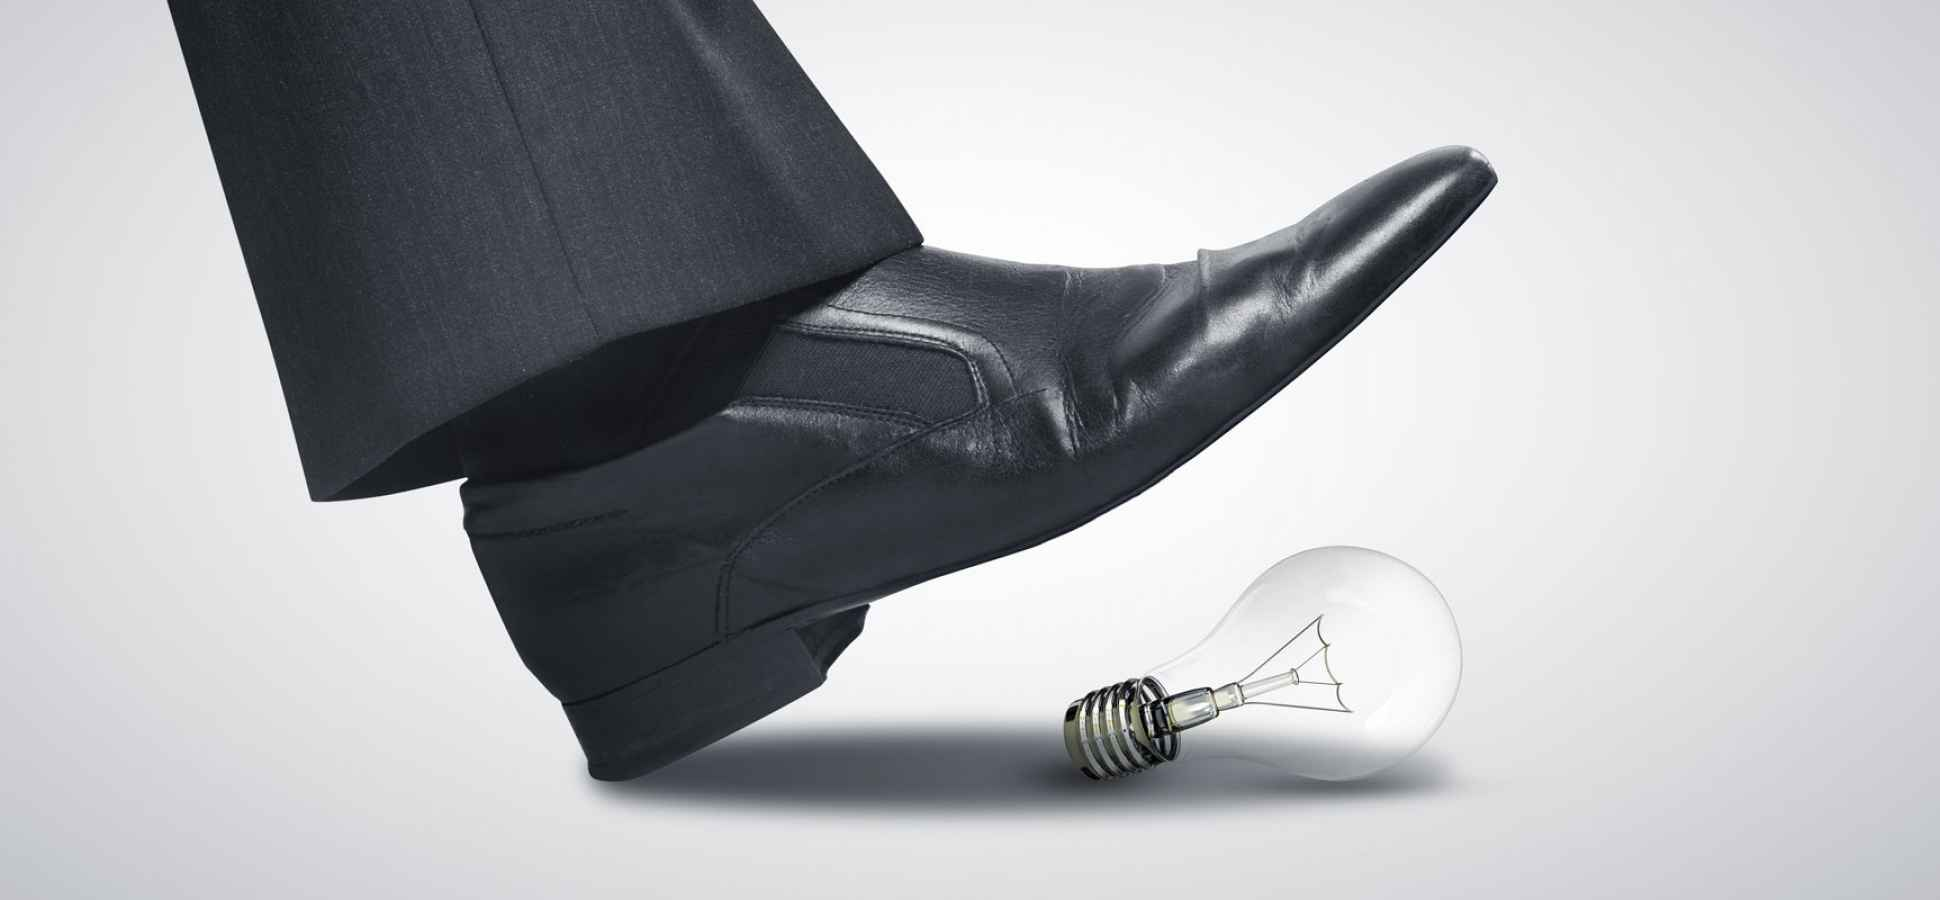 Encouraging Innovation: You're Doing It Wrong